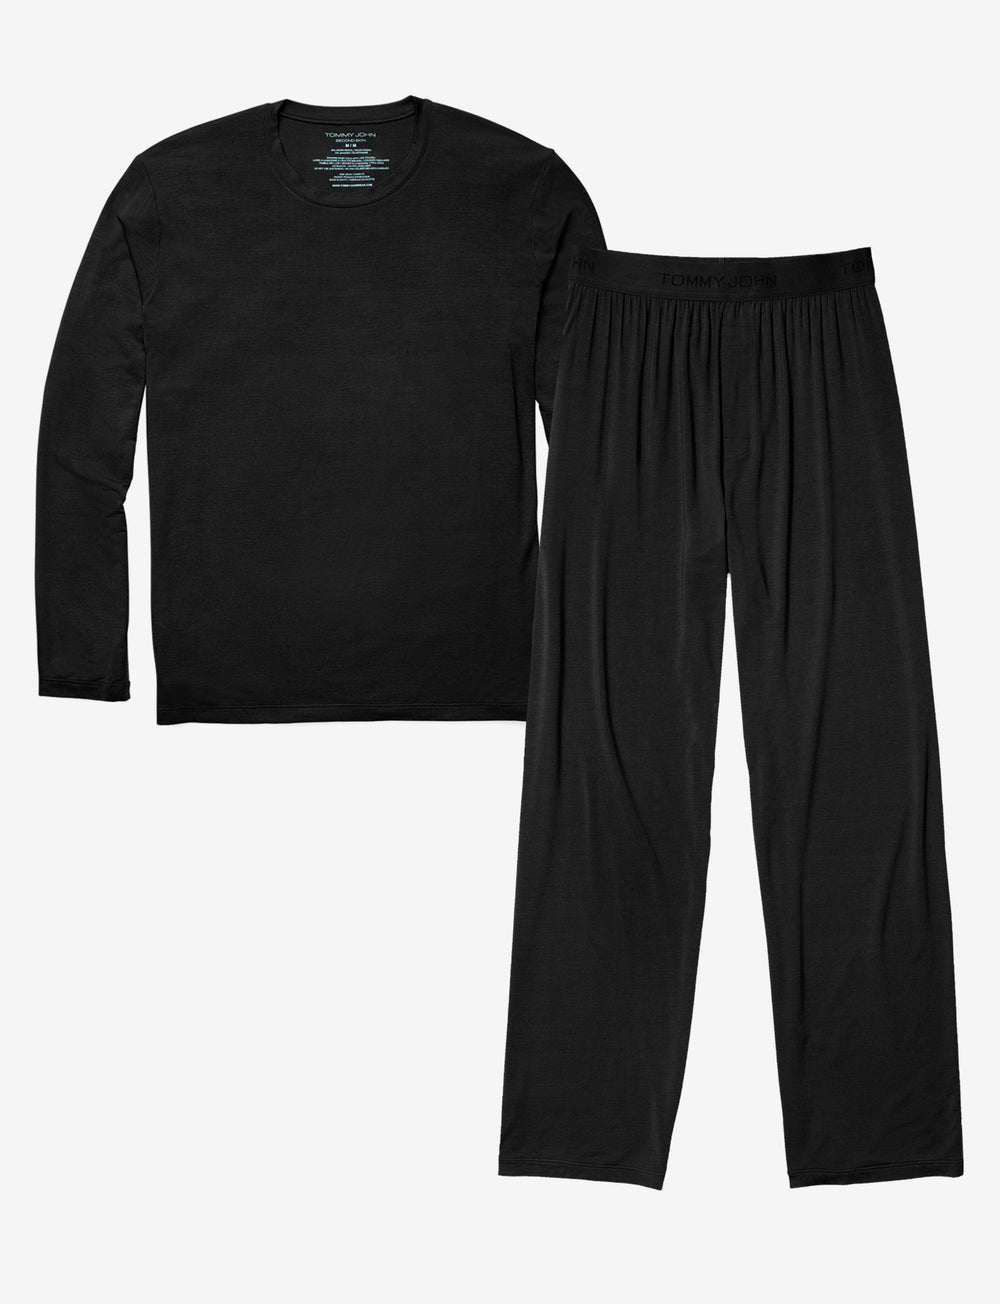 Lounge Pants and Long Sleeve Pack Details Image